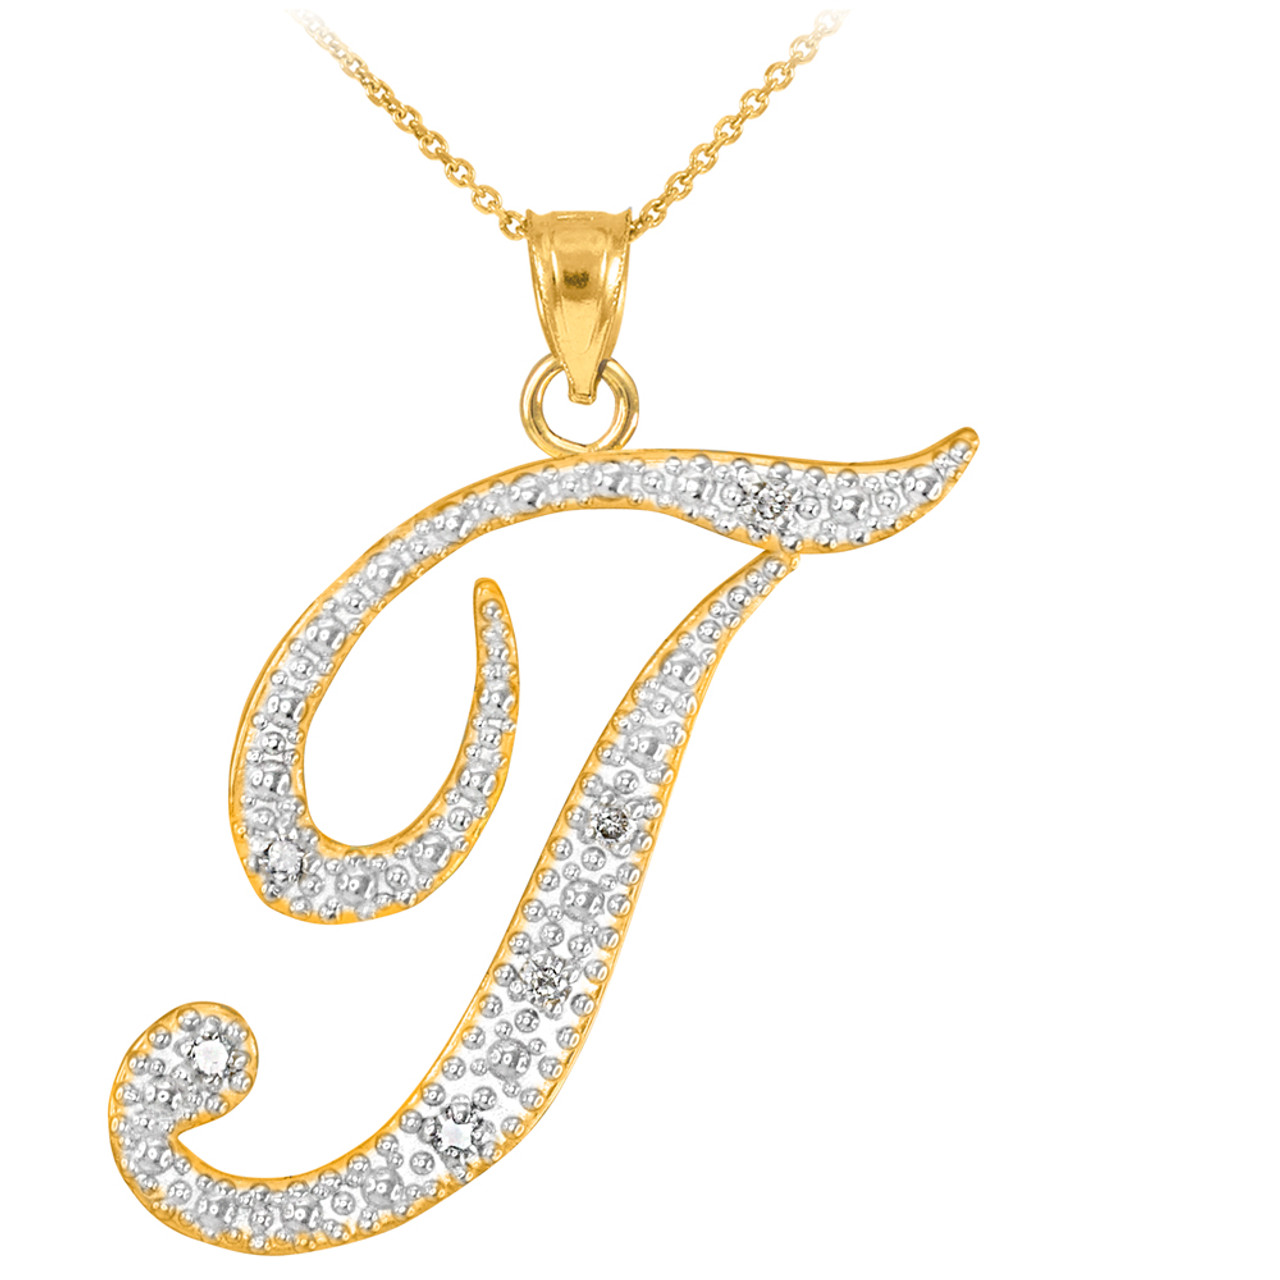 constrain pendant hei jewelry alphabet gold id ed necklace wid g letter fmt co items peretti in tiffany fit elsa